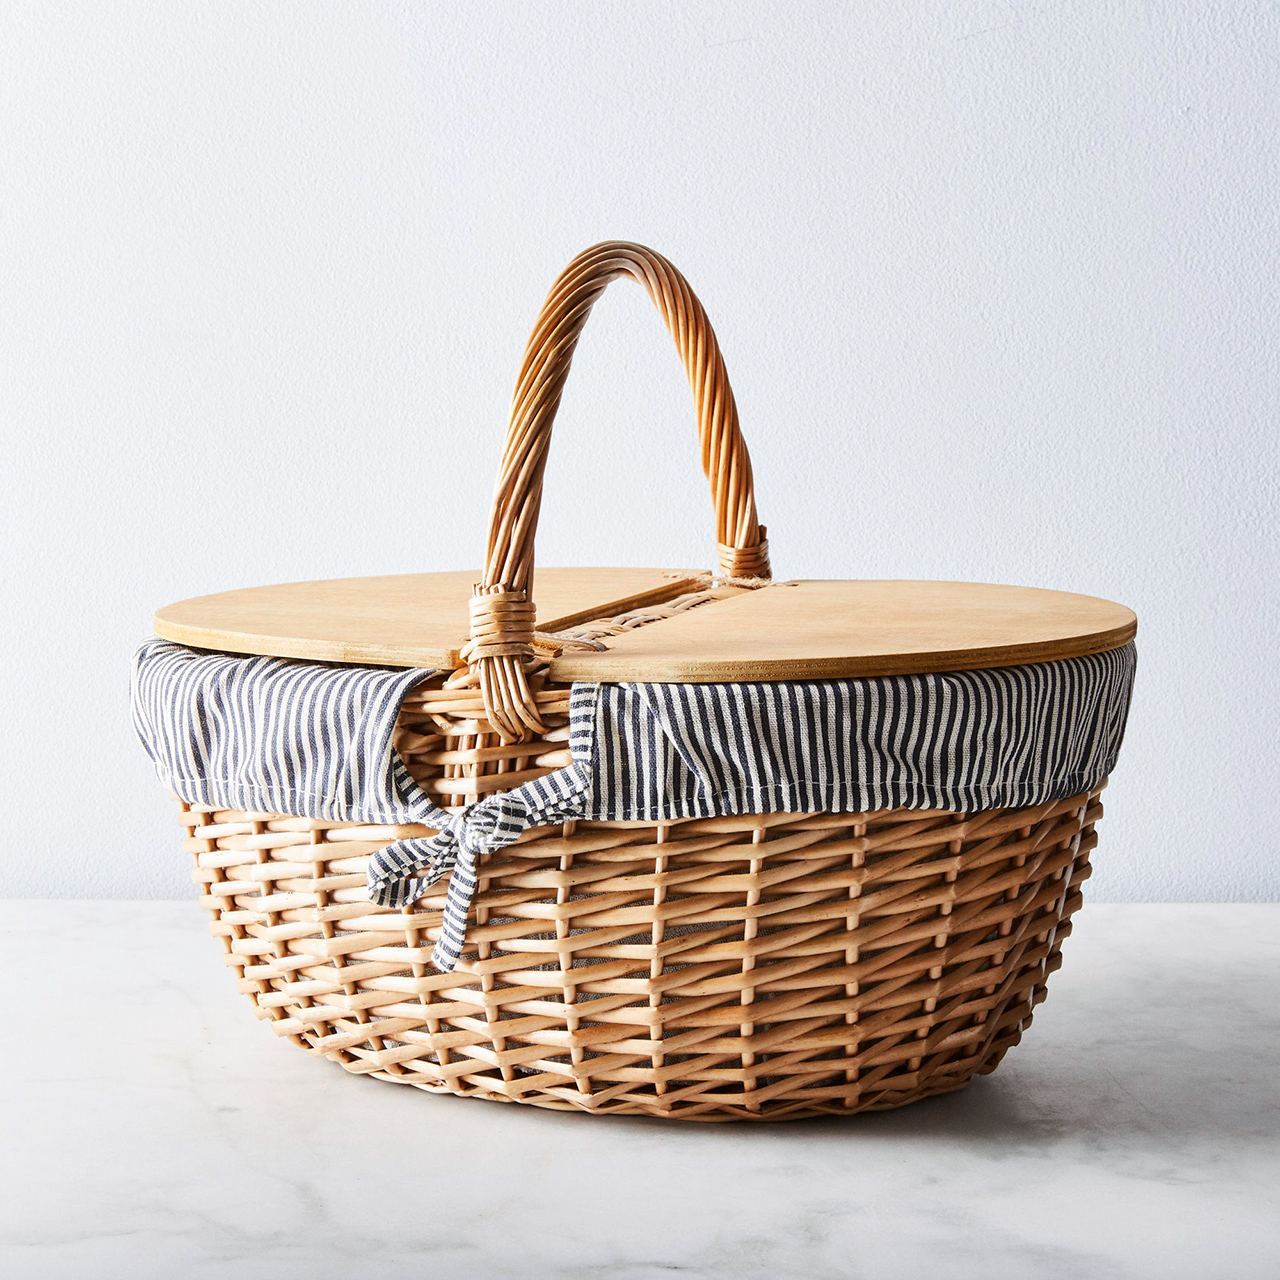 blue and white striped picnic basket